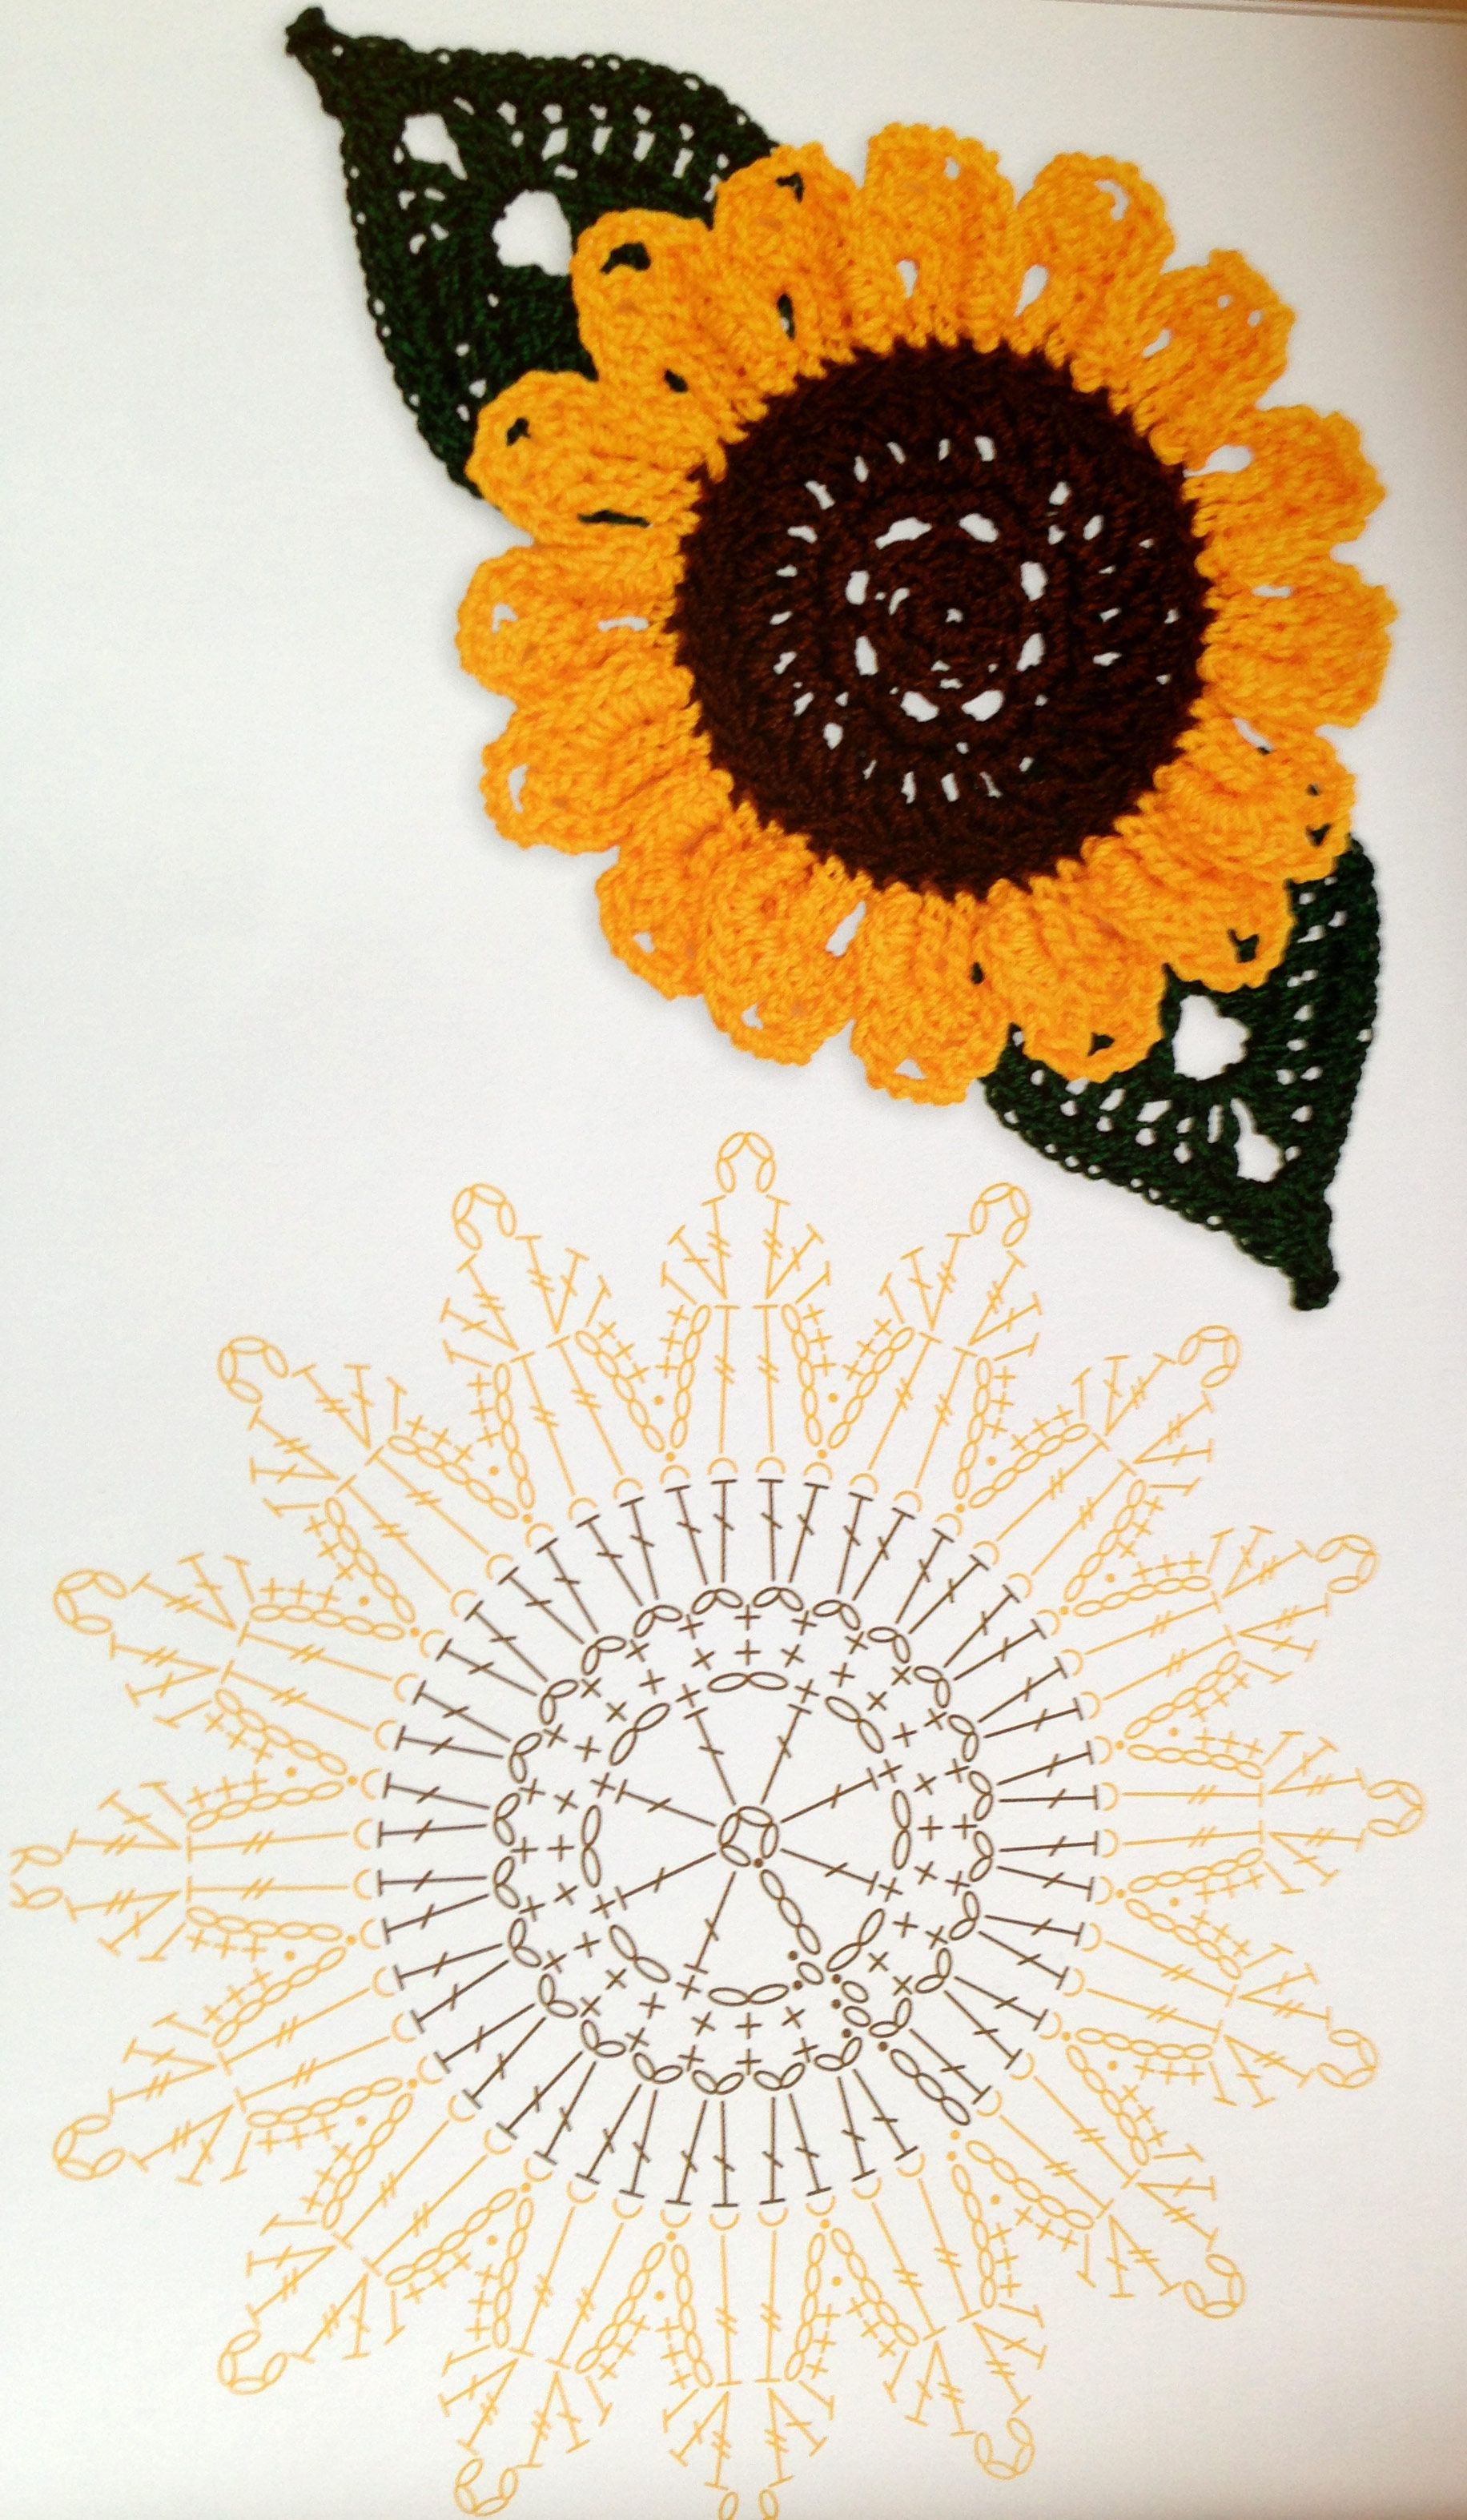 Sunflower crochet pattern | Fiori | Pinterest | Girasoles, Flores y ...